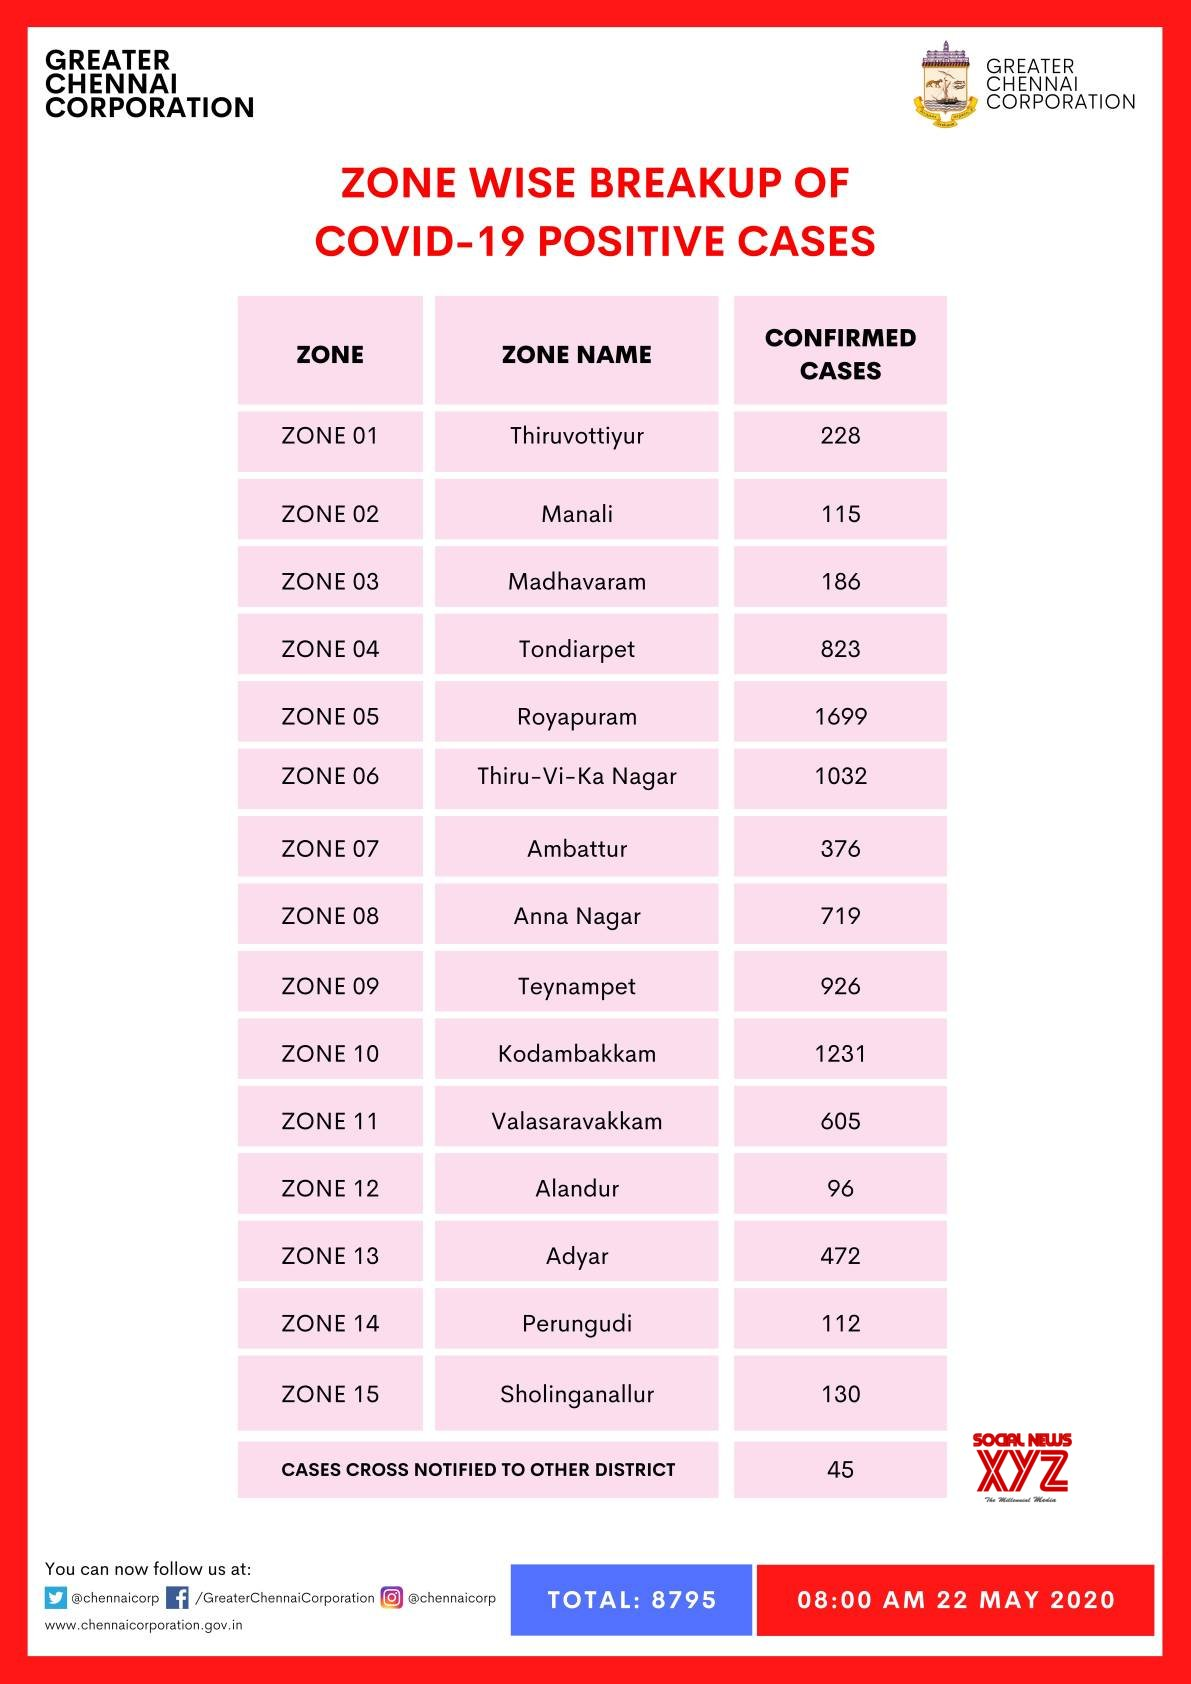 Chennai Zone Wise Breakup Of COVID 19 Positive Cases As On 21 May